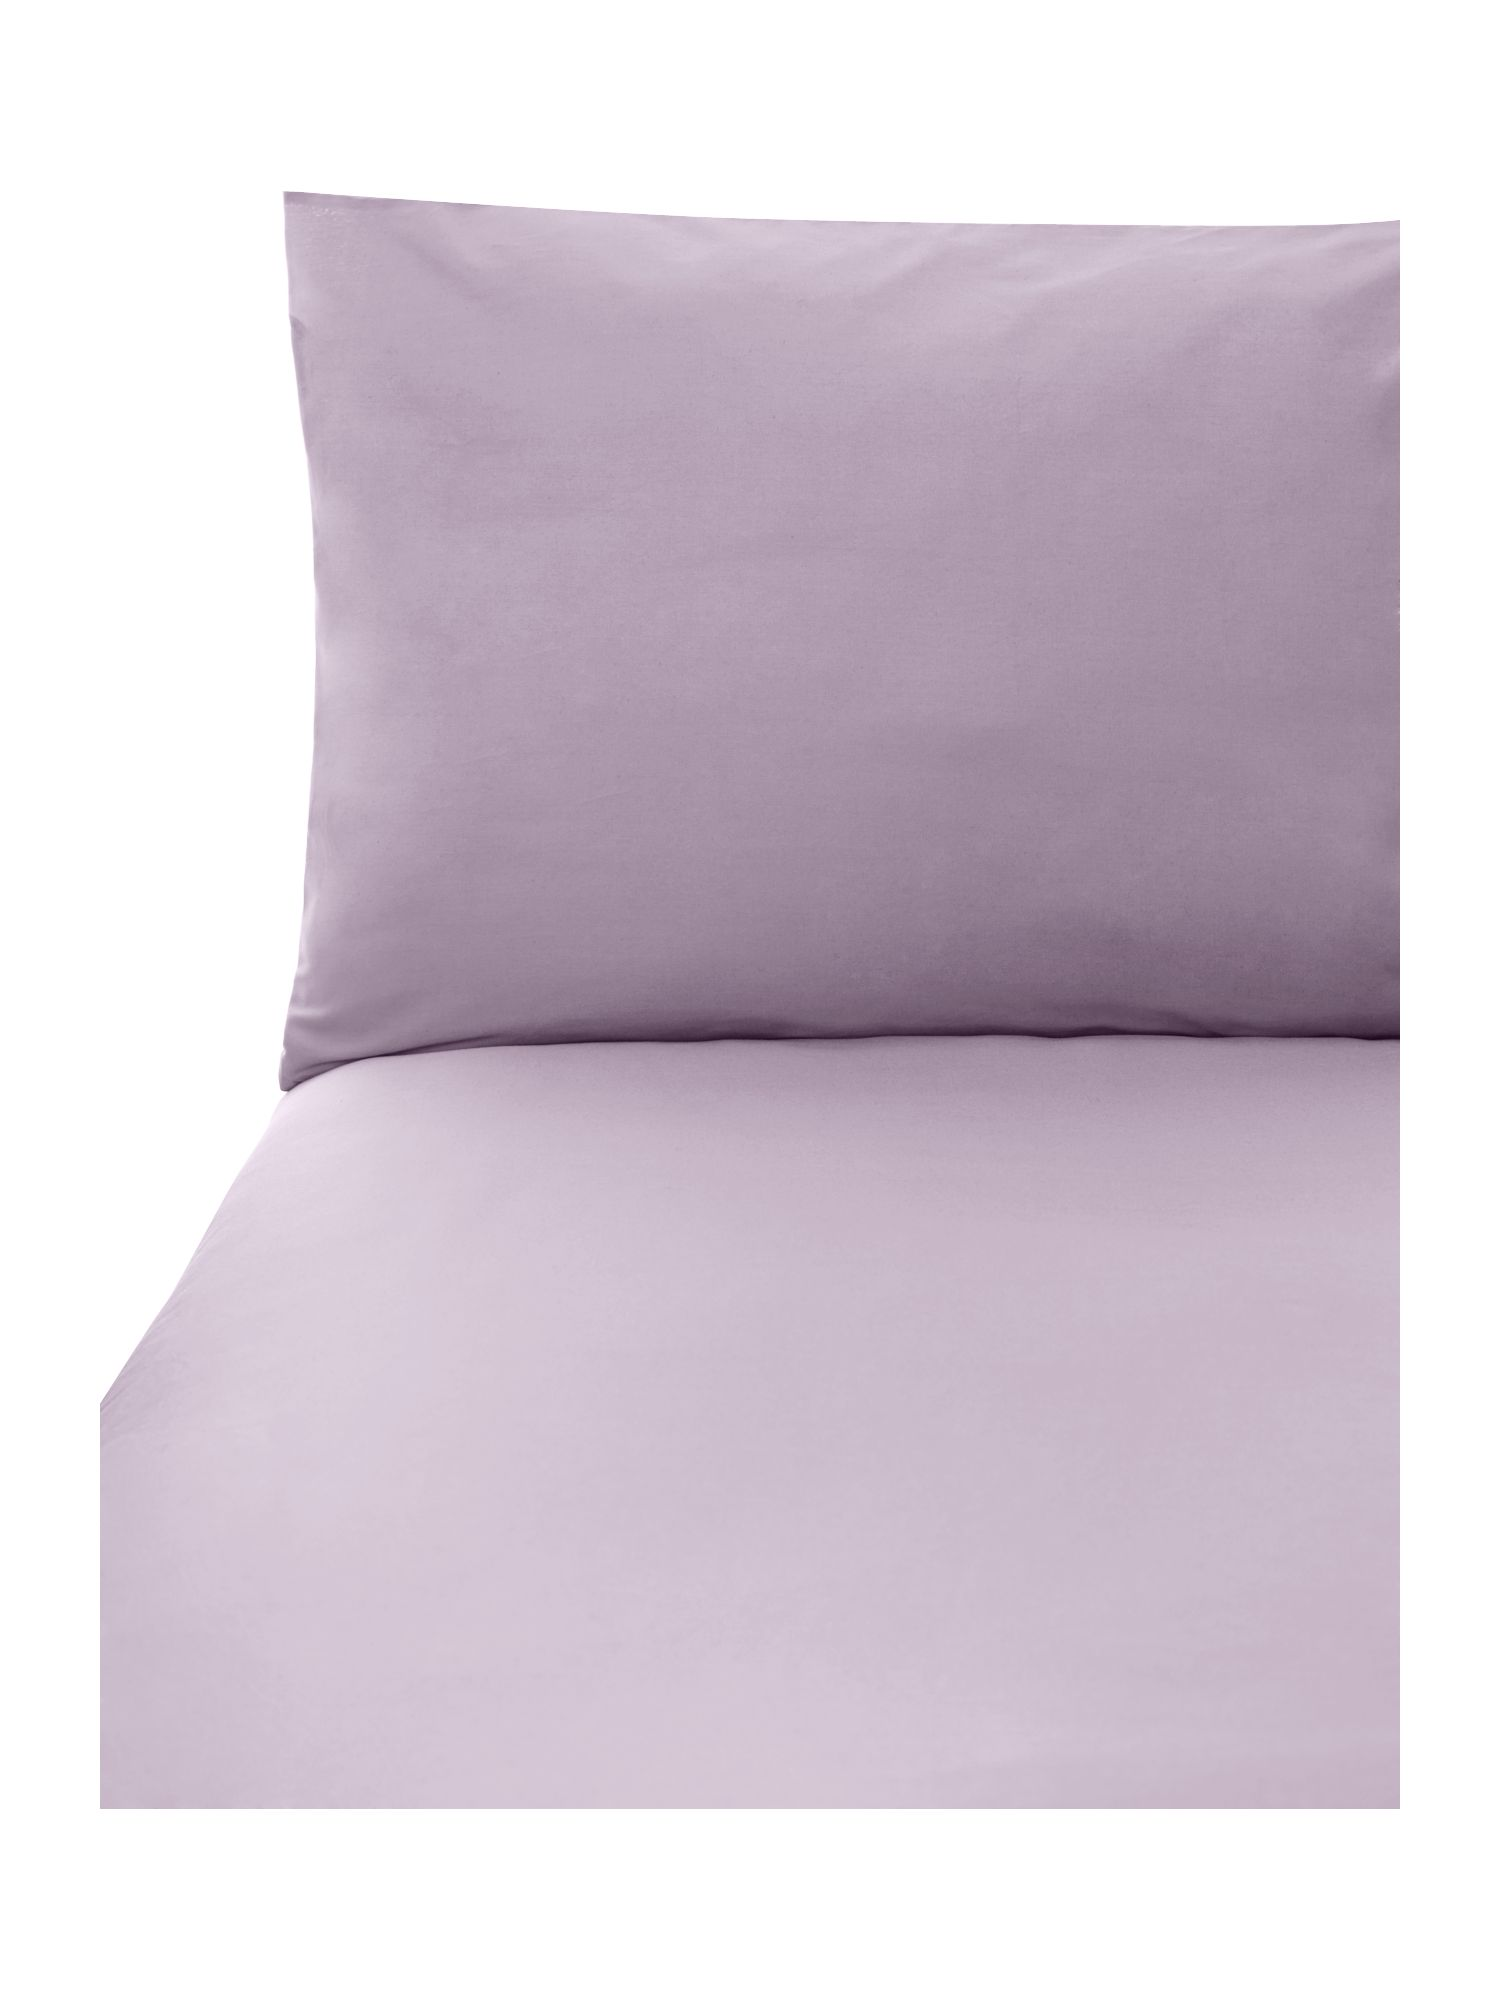 Lilac 100% cotton single flat sheet